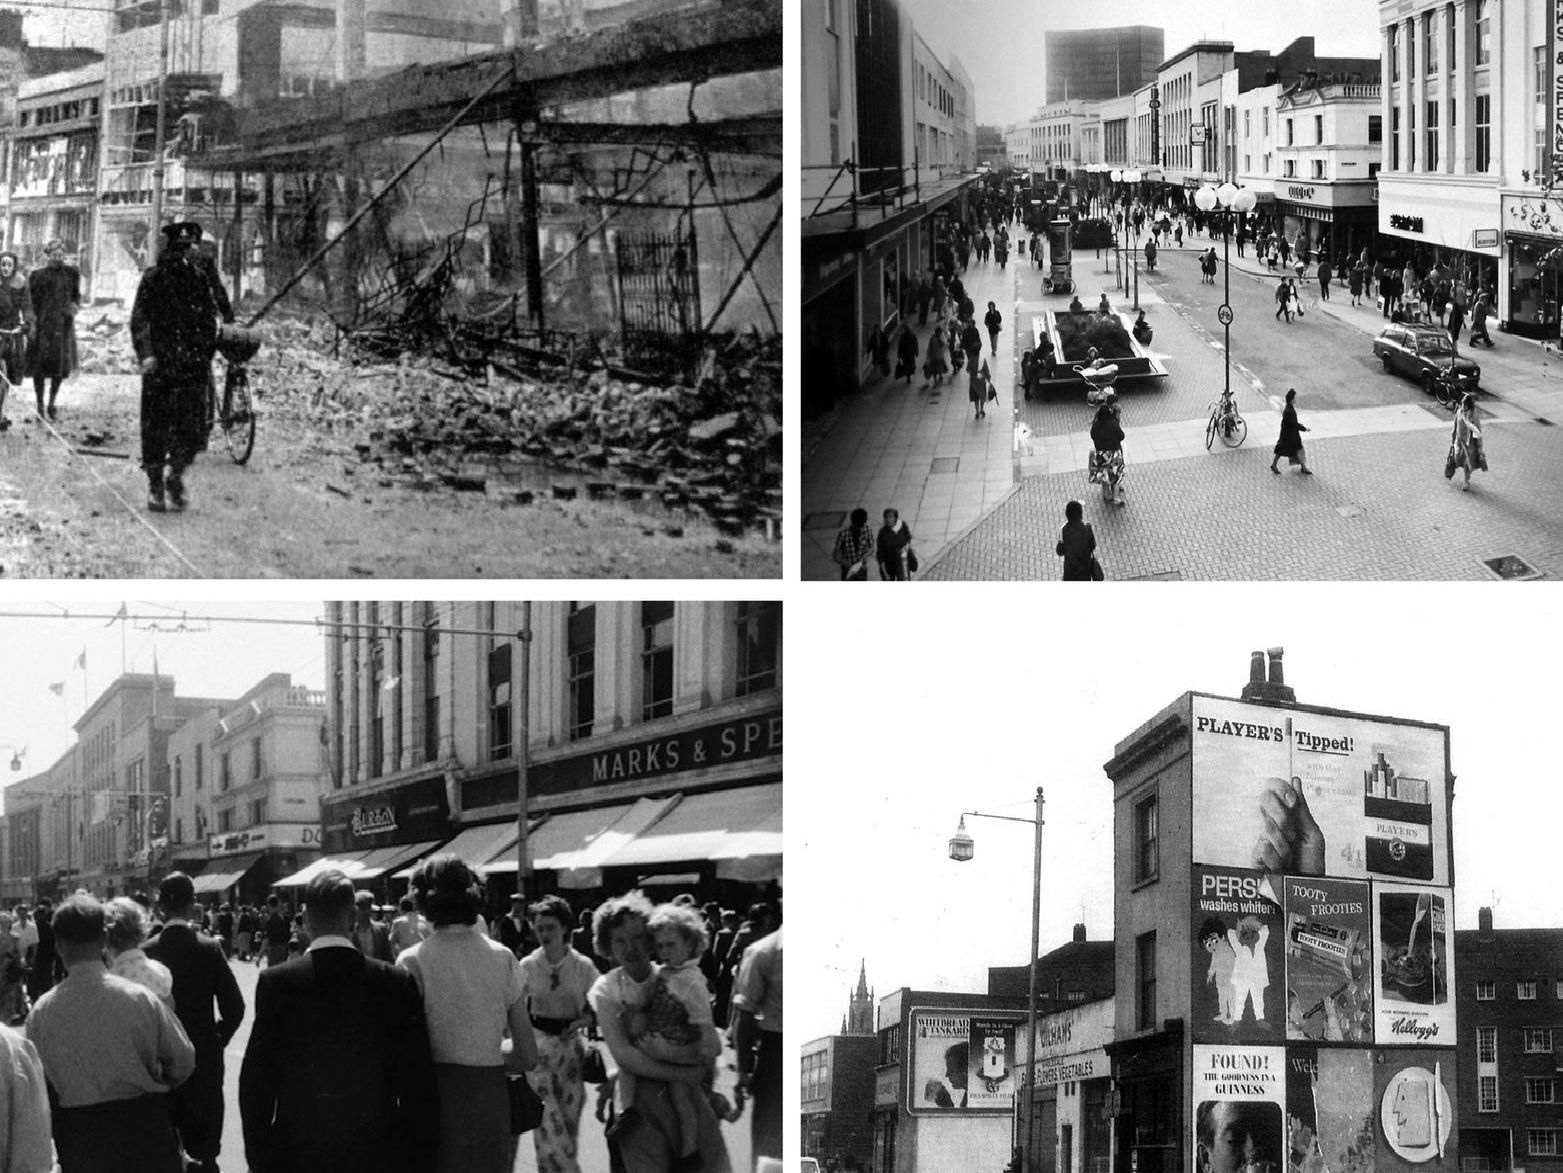 Commercial Road collage